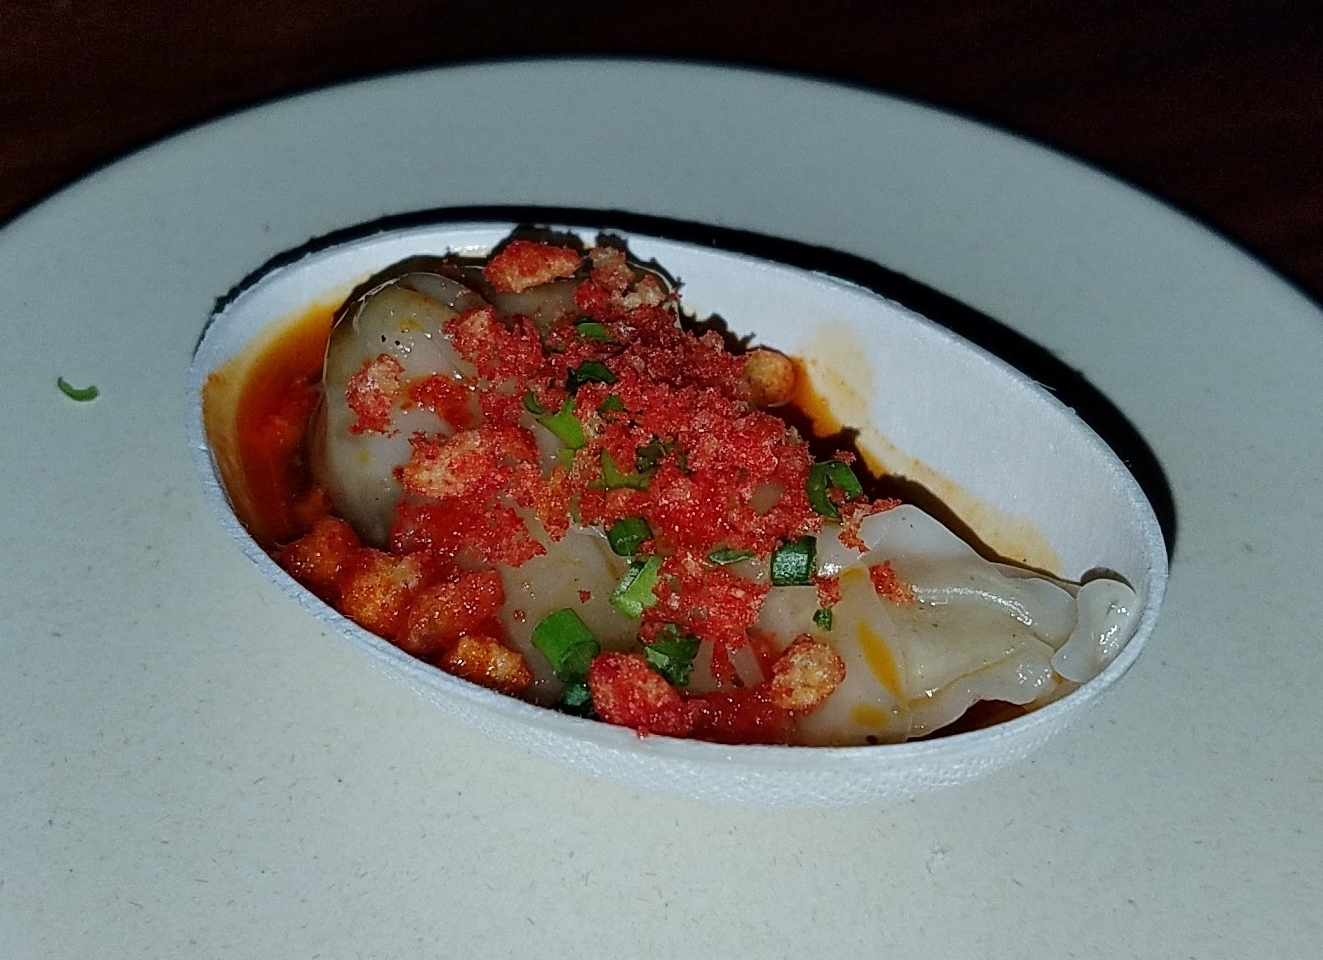 Sichuan tongue wontons with Flamin' Hot Cheetos